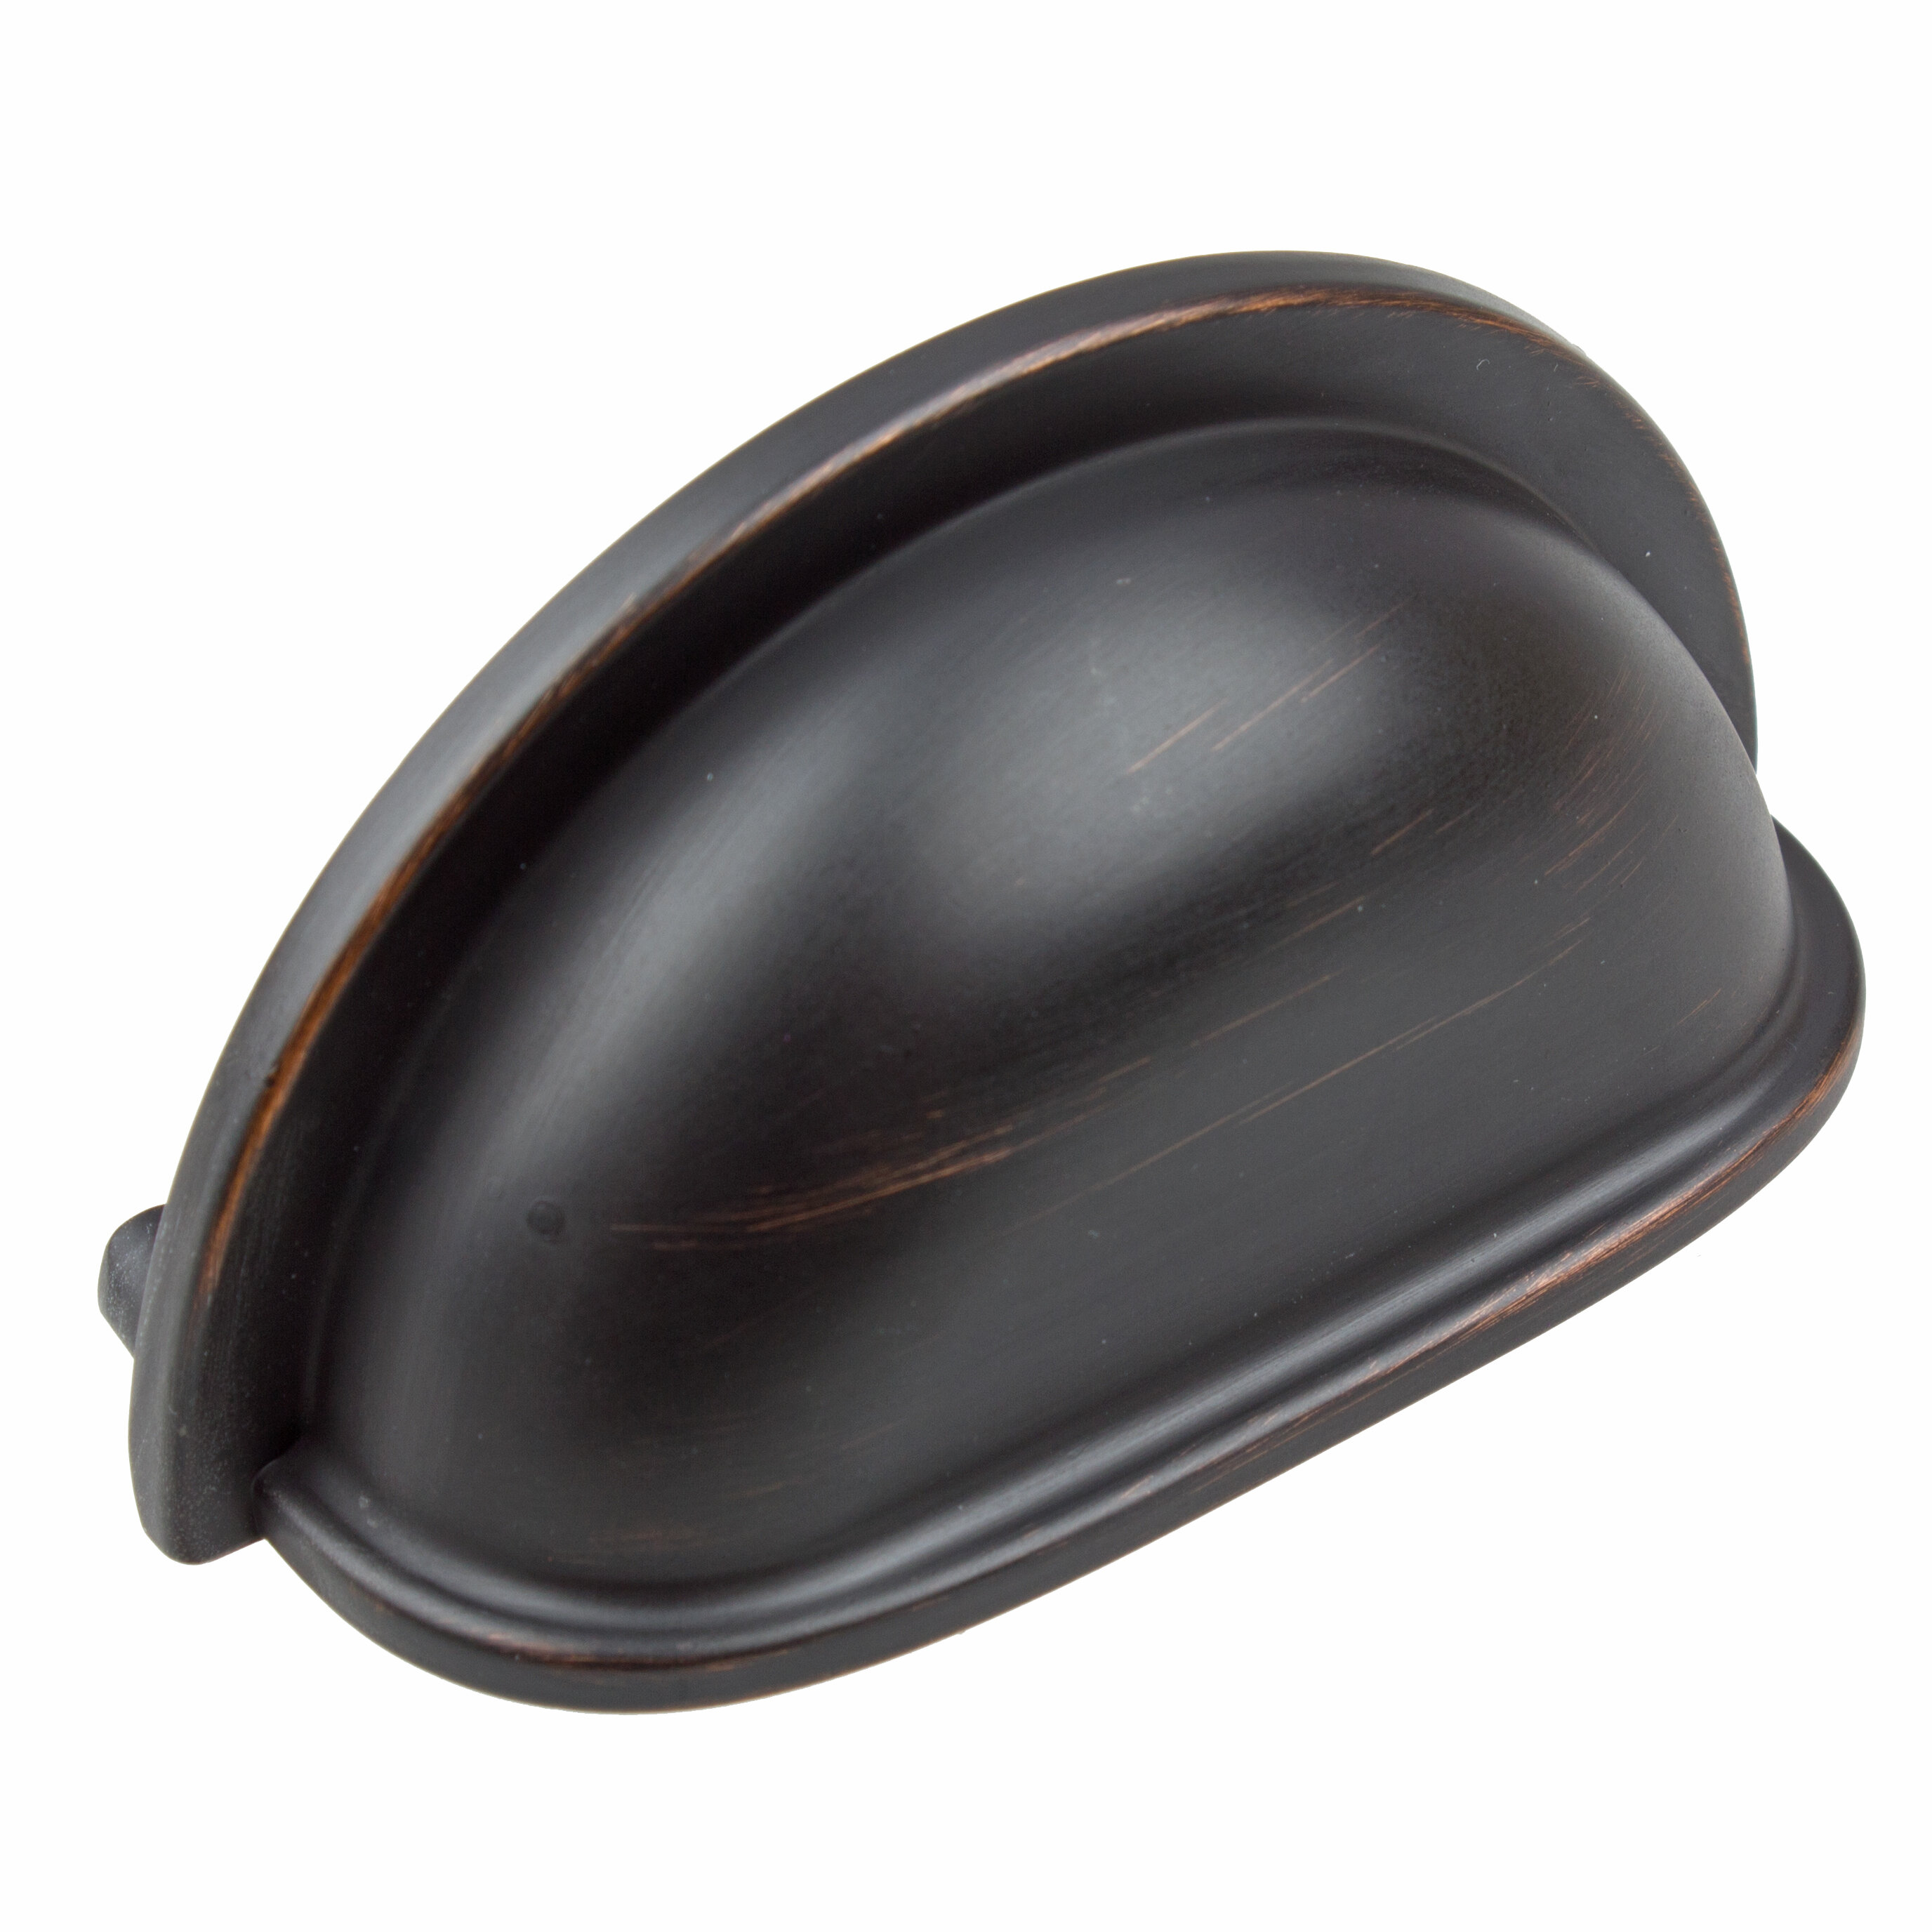 Oil Rubbed Bronze Cabinet Drawer Pulls You Ll Love In 2021 Wayfair